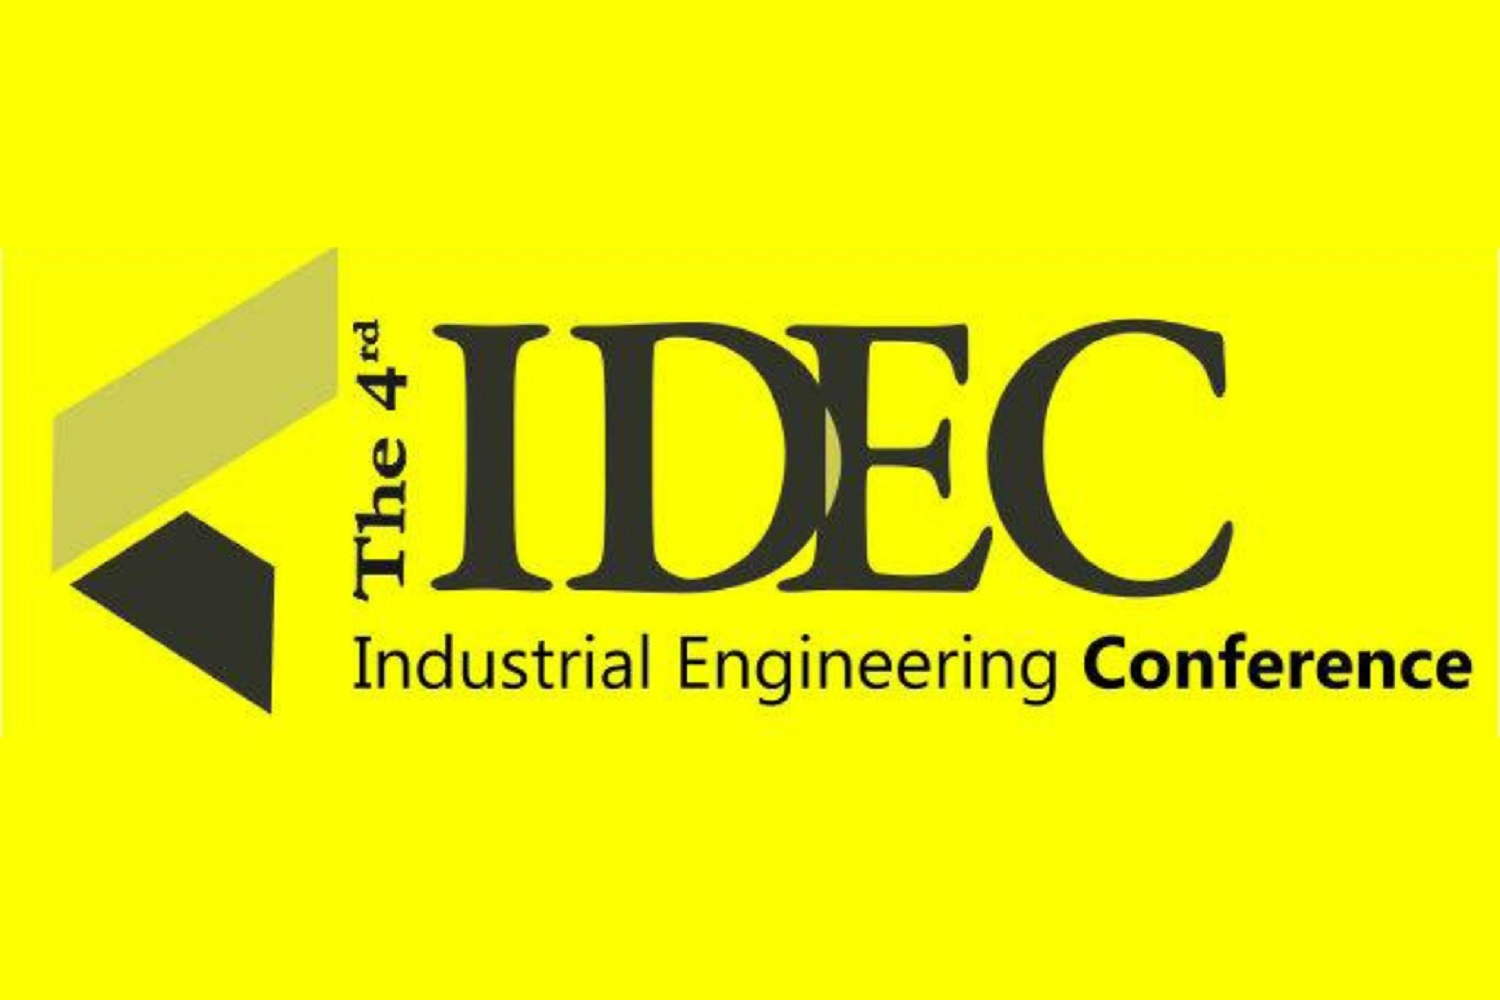 The 4th IDEC (Industrial Engineering Conference)